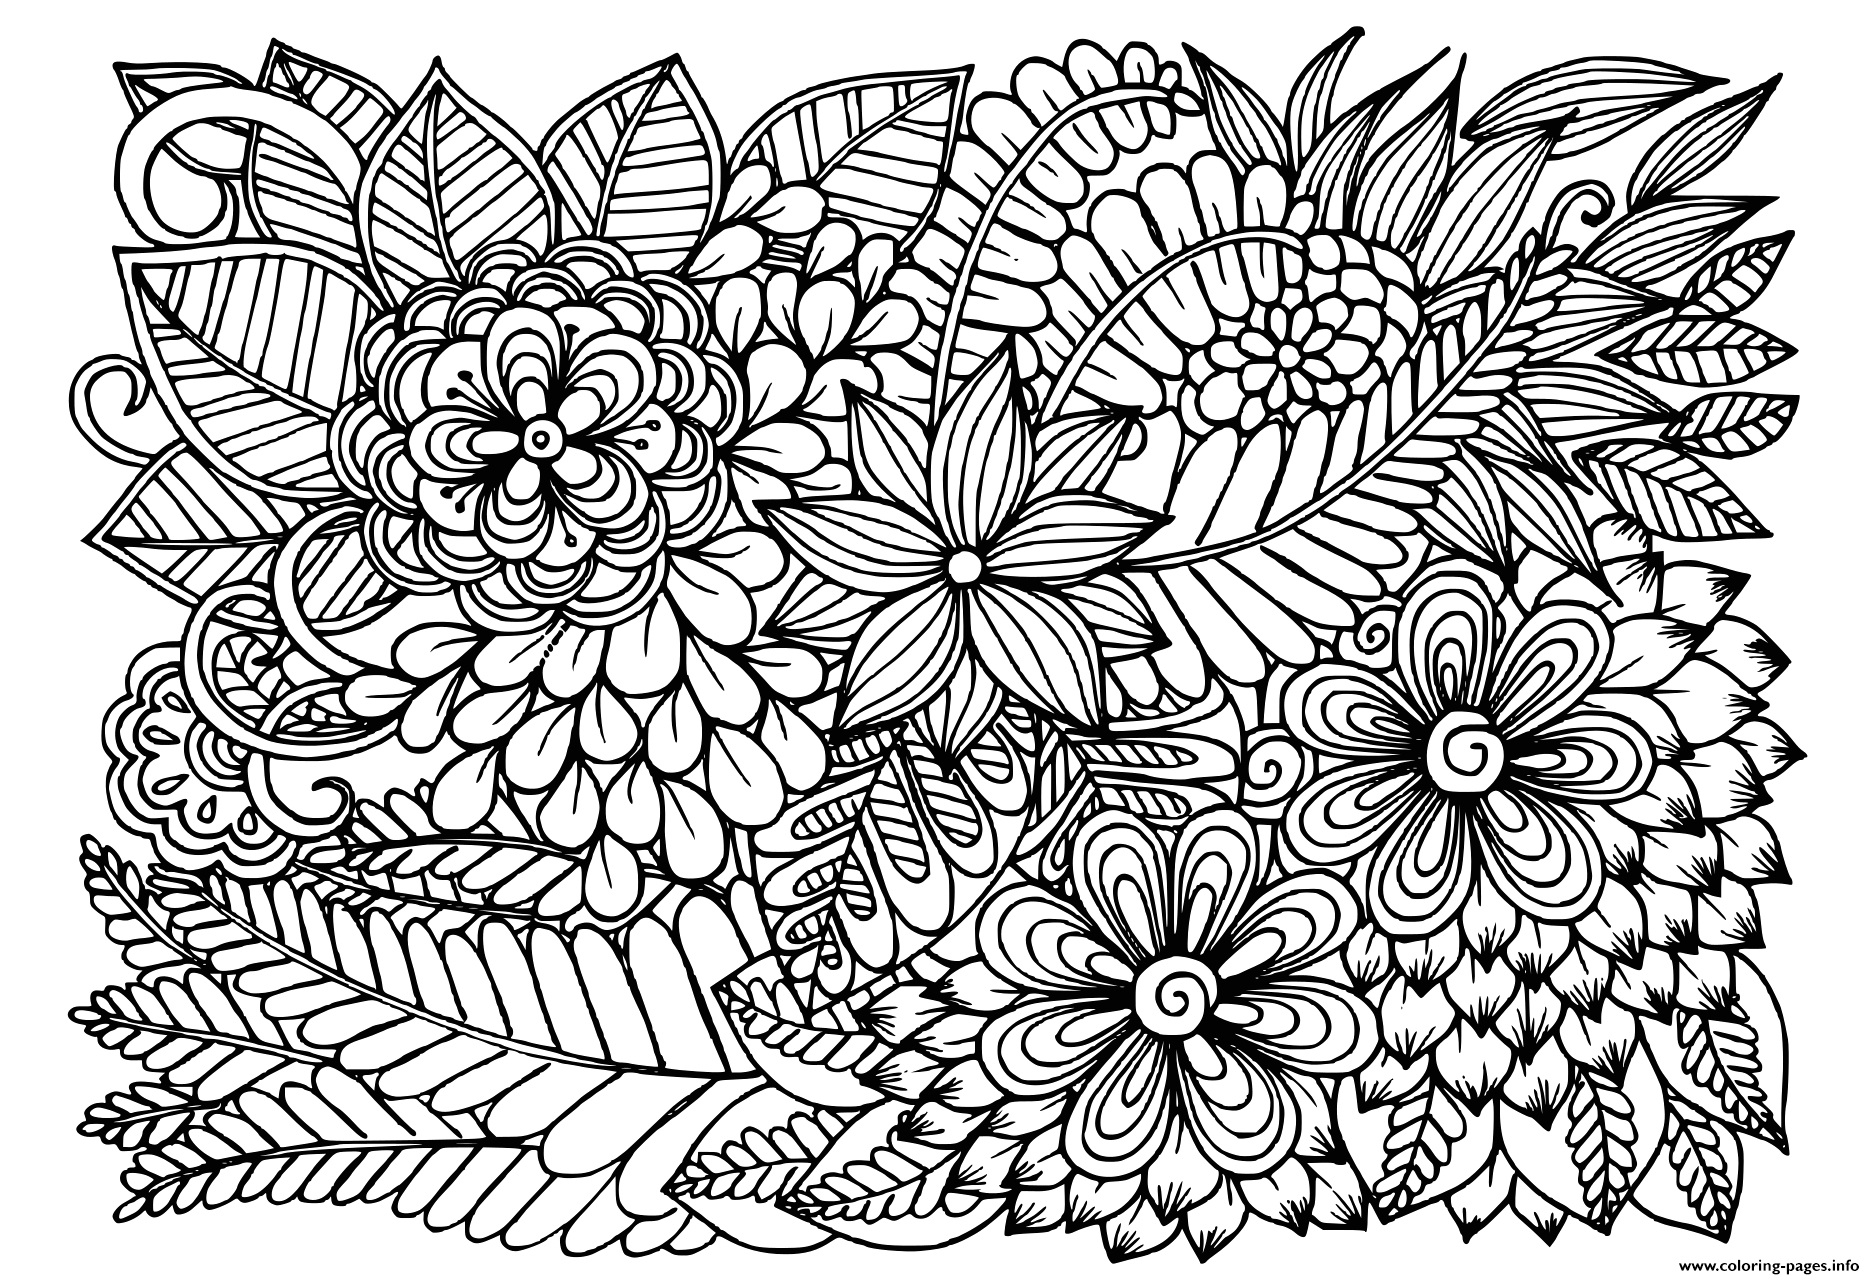 Black and White Coloring Pages Of Flowers Doodle Flowers In Black and White Floral Pattern Coloring